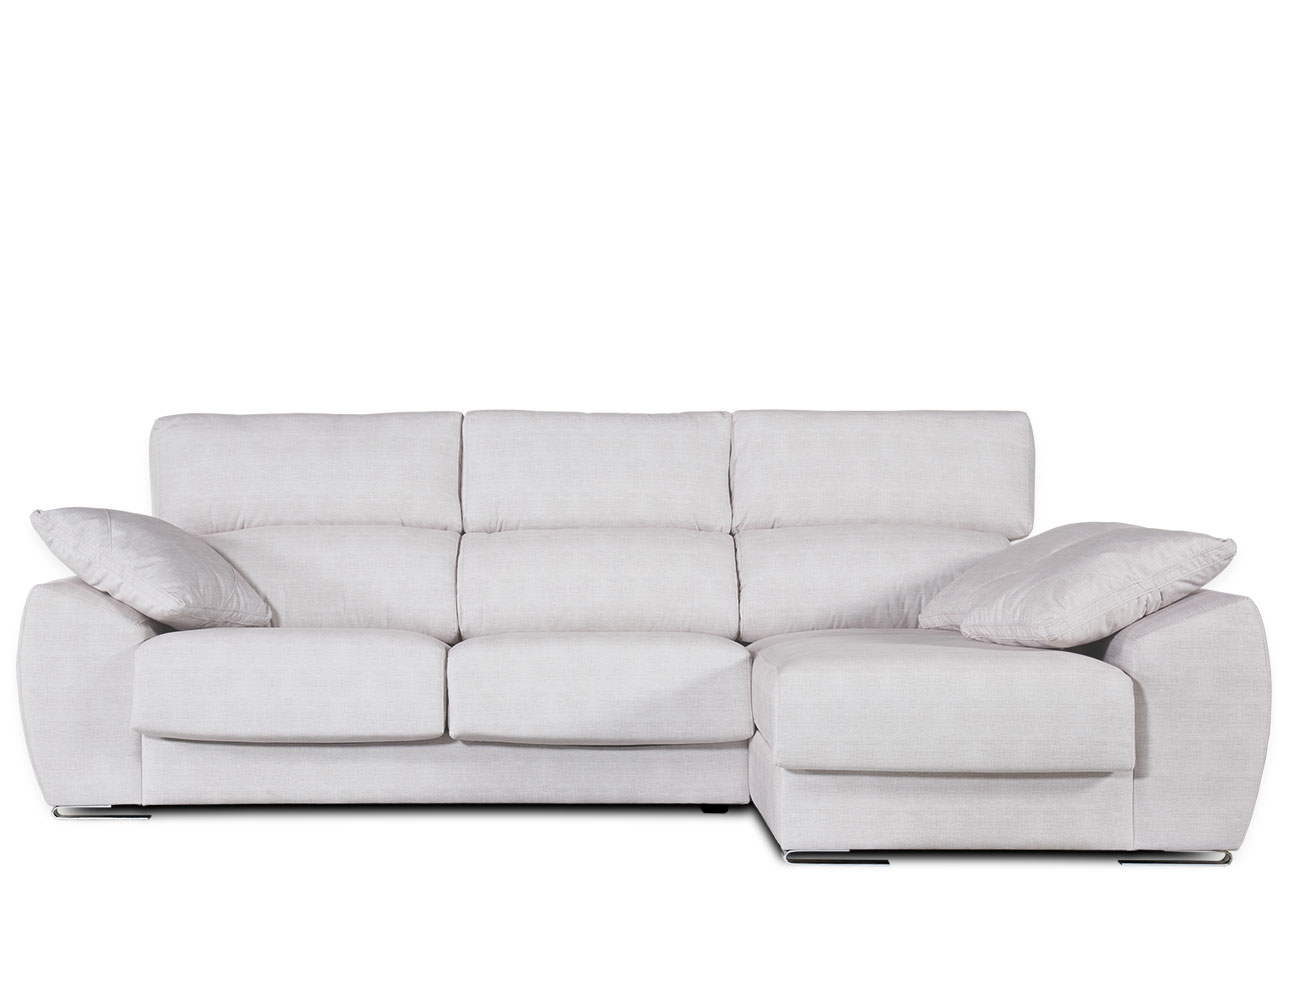 Sofa chaiselongue moderno blanco2